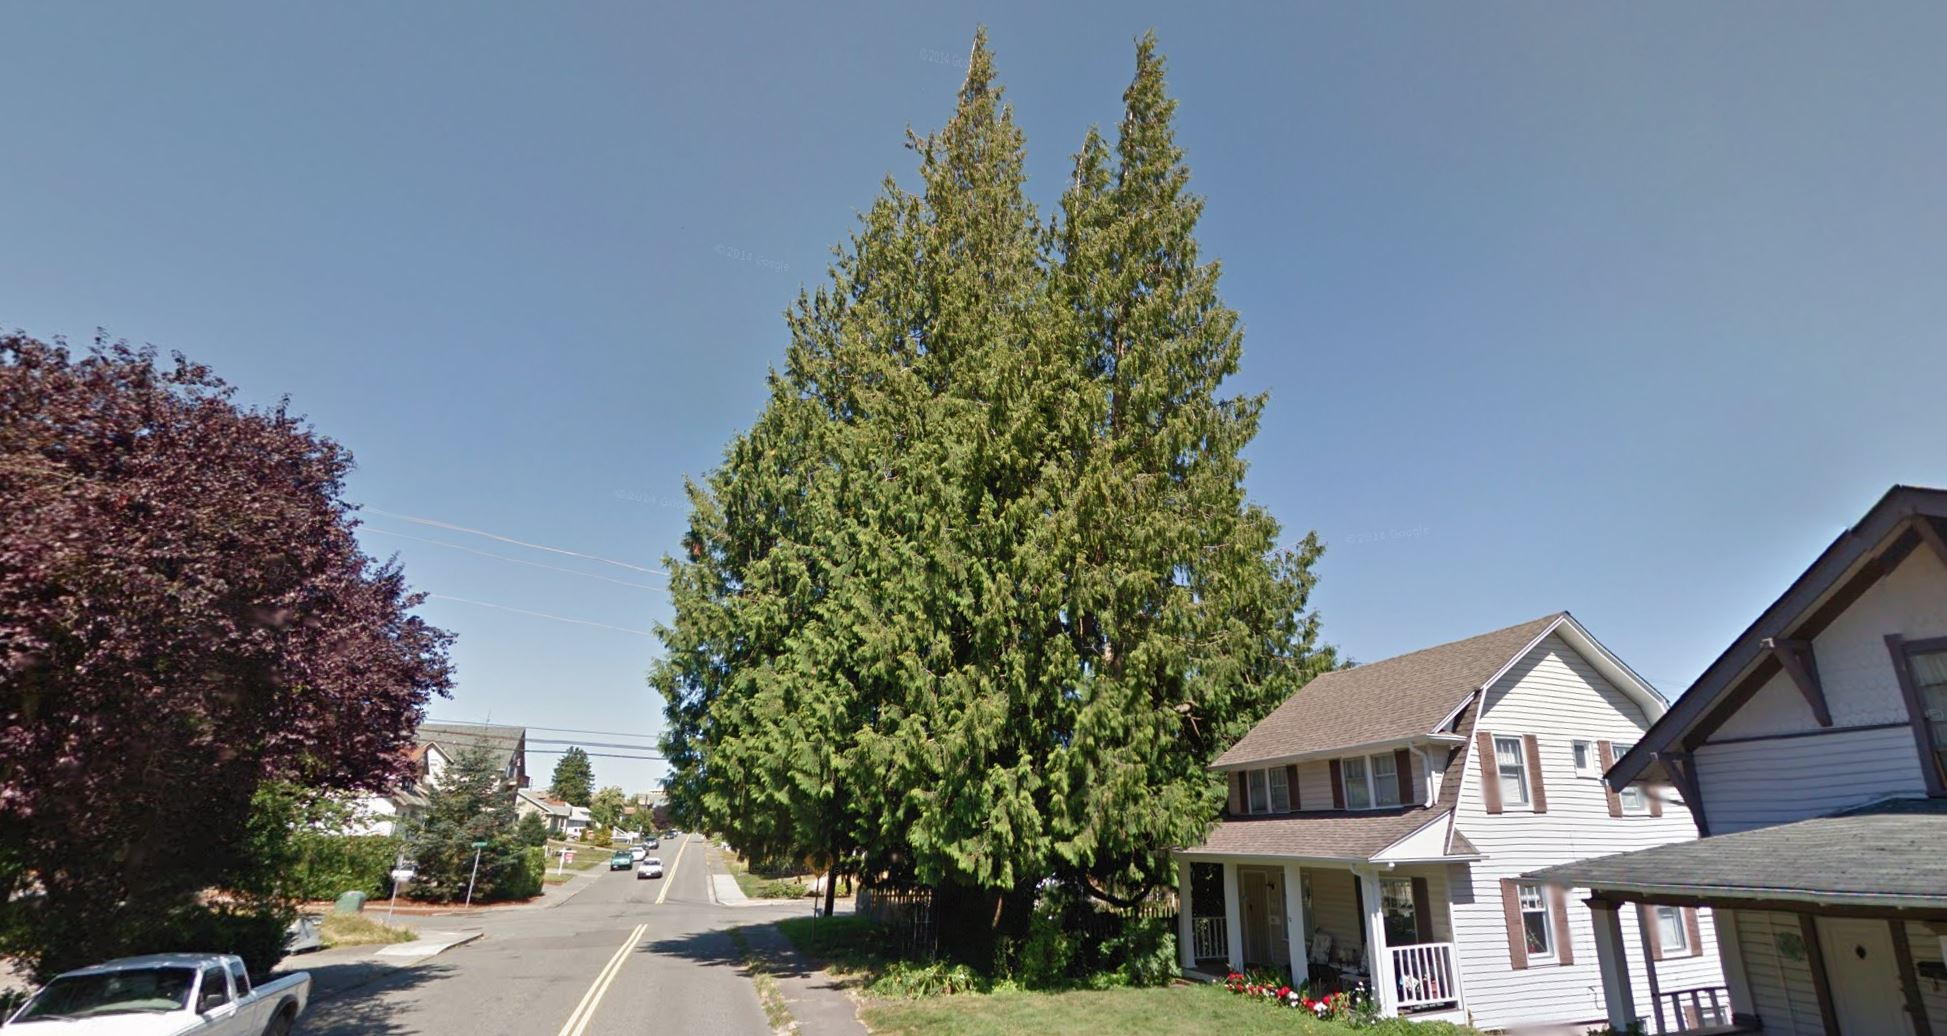 a majestic giant cedar tree just up the street from my house (photo via Google Street View)